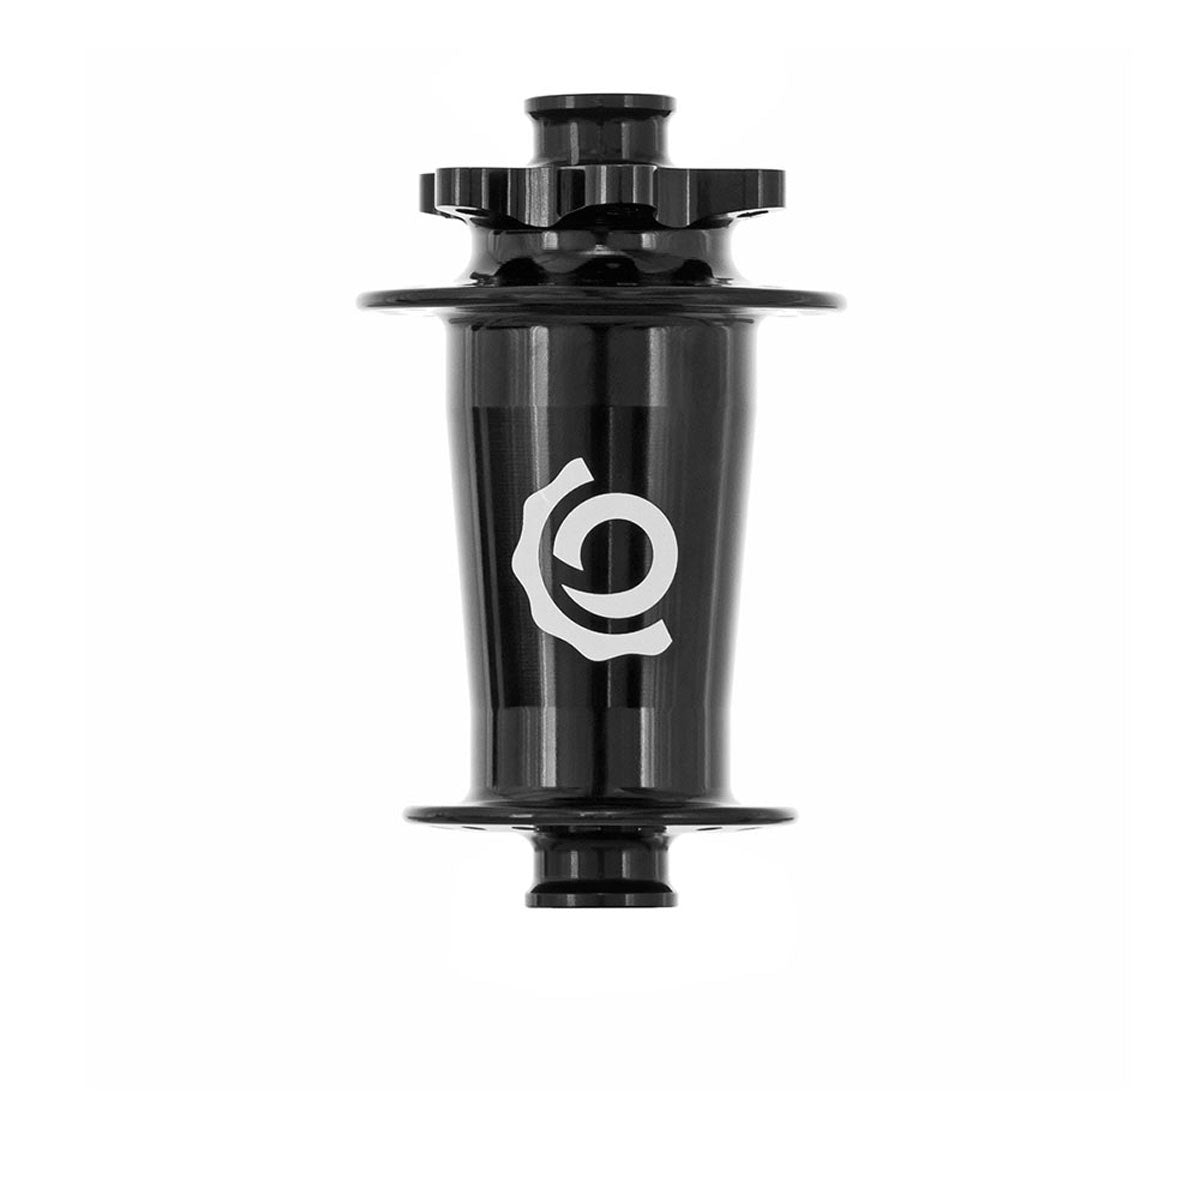 I9 HYDRA CLASSIC 6 BOLT, BOOST HUBSET - PLEASE EMAIL US TO CONFIRM STOCK